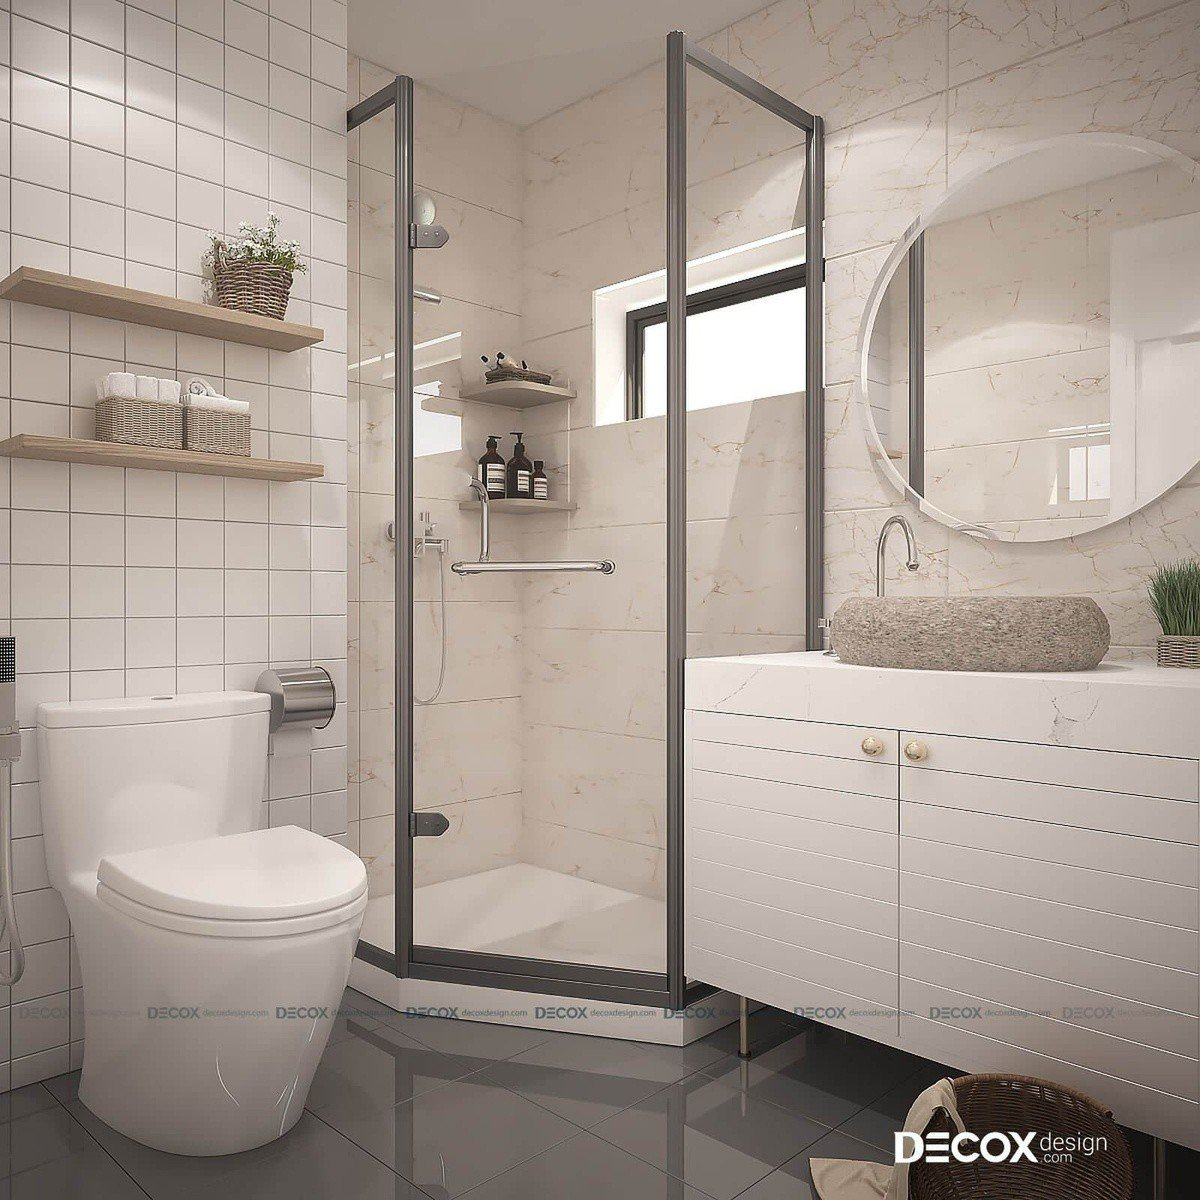 thiet-ke-noi-that-can-ho-botanica-96m2-13-wc-phong-master-decox-design